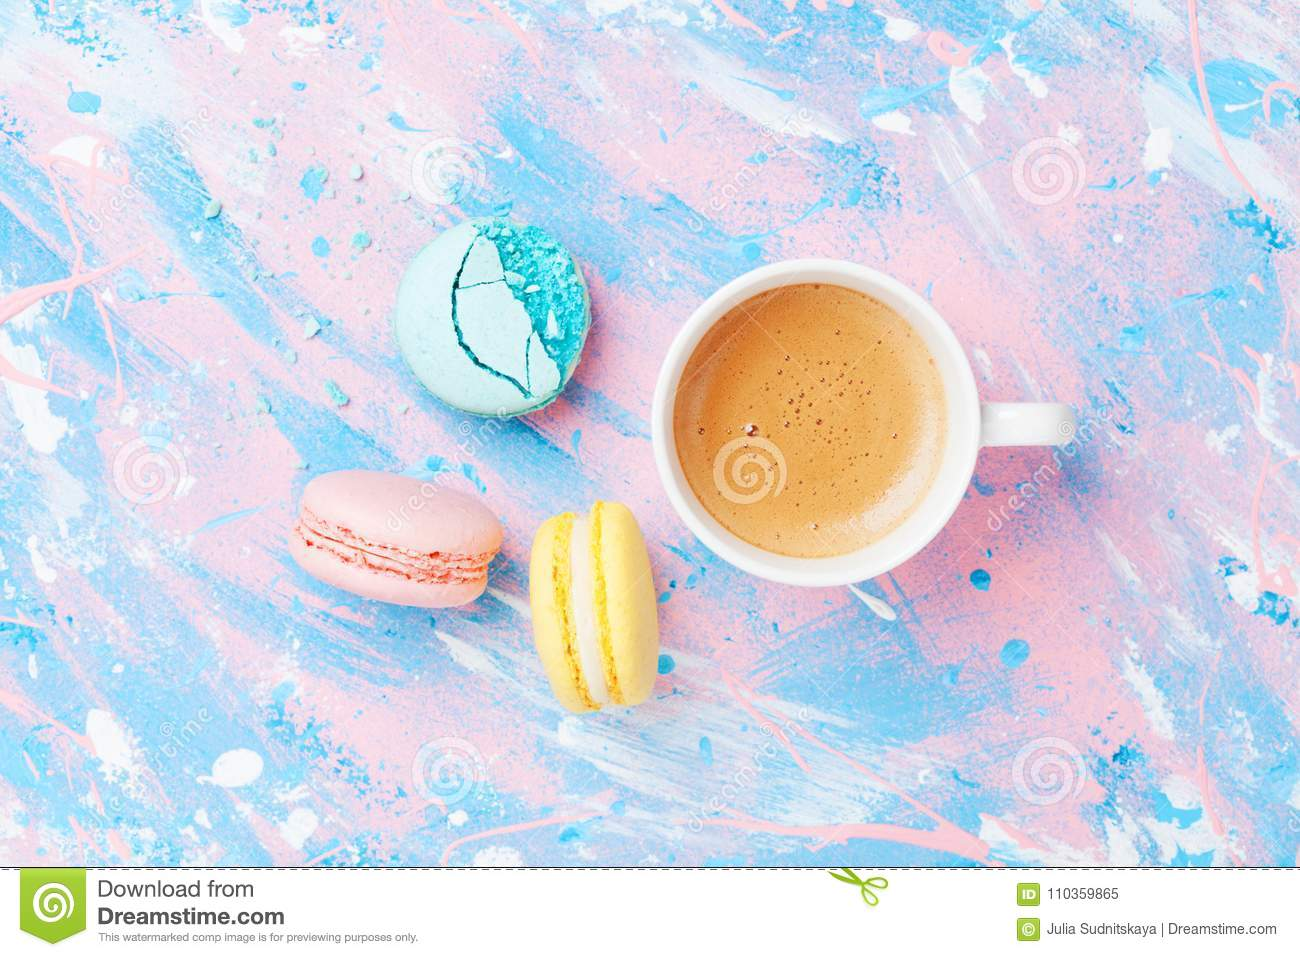 Cake macaron or macaroon and cup of coffee on colorful table top view. Flat lay. Creative breakfast for Woman day. Punchy pastel.